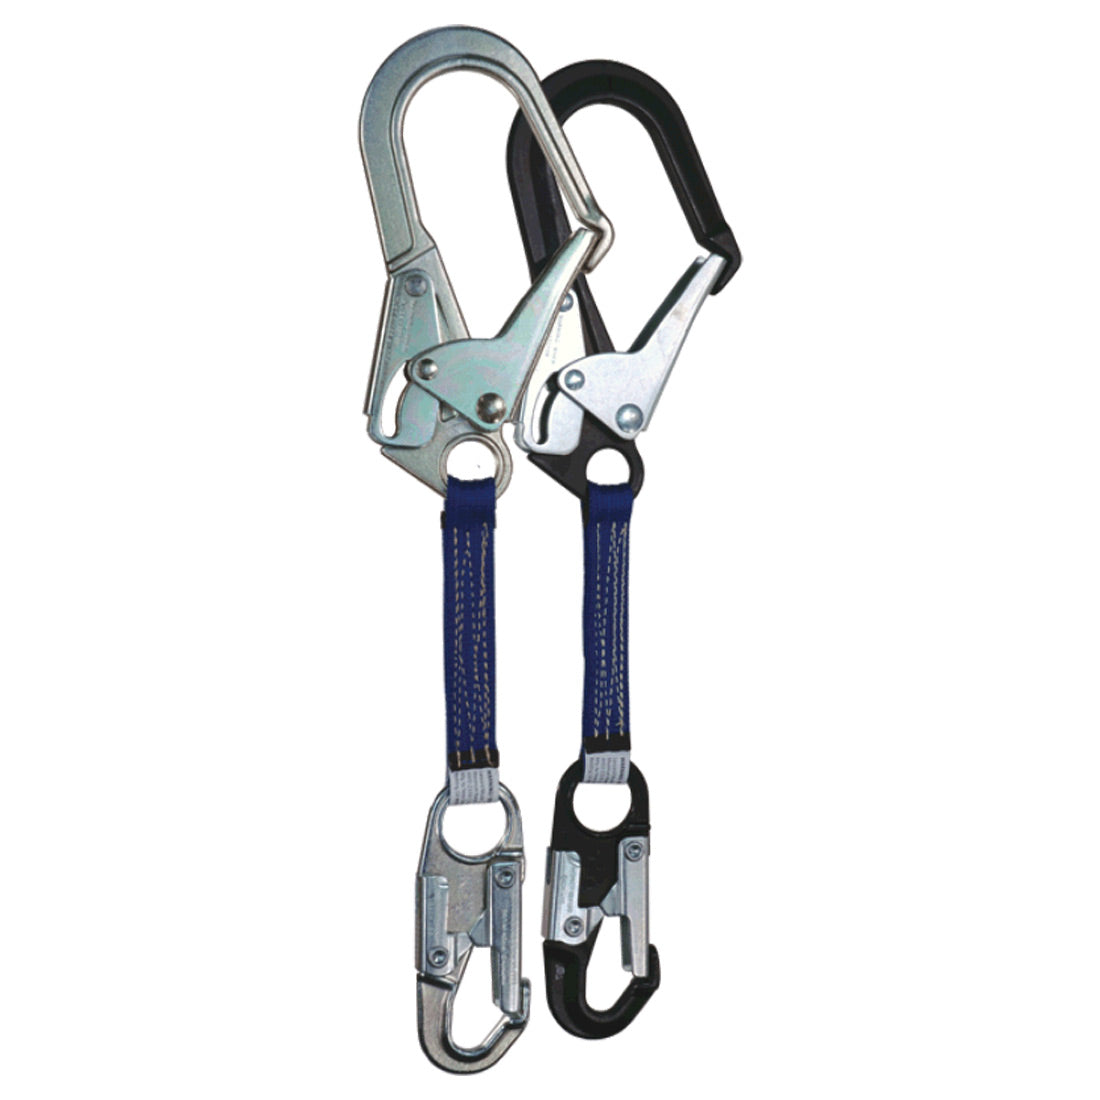 Yates 324 Ladder Hook Extension | Ladder Hook Extension